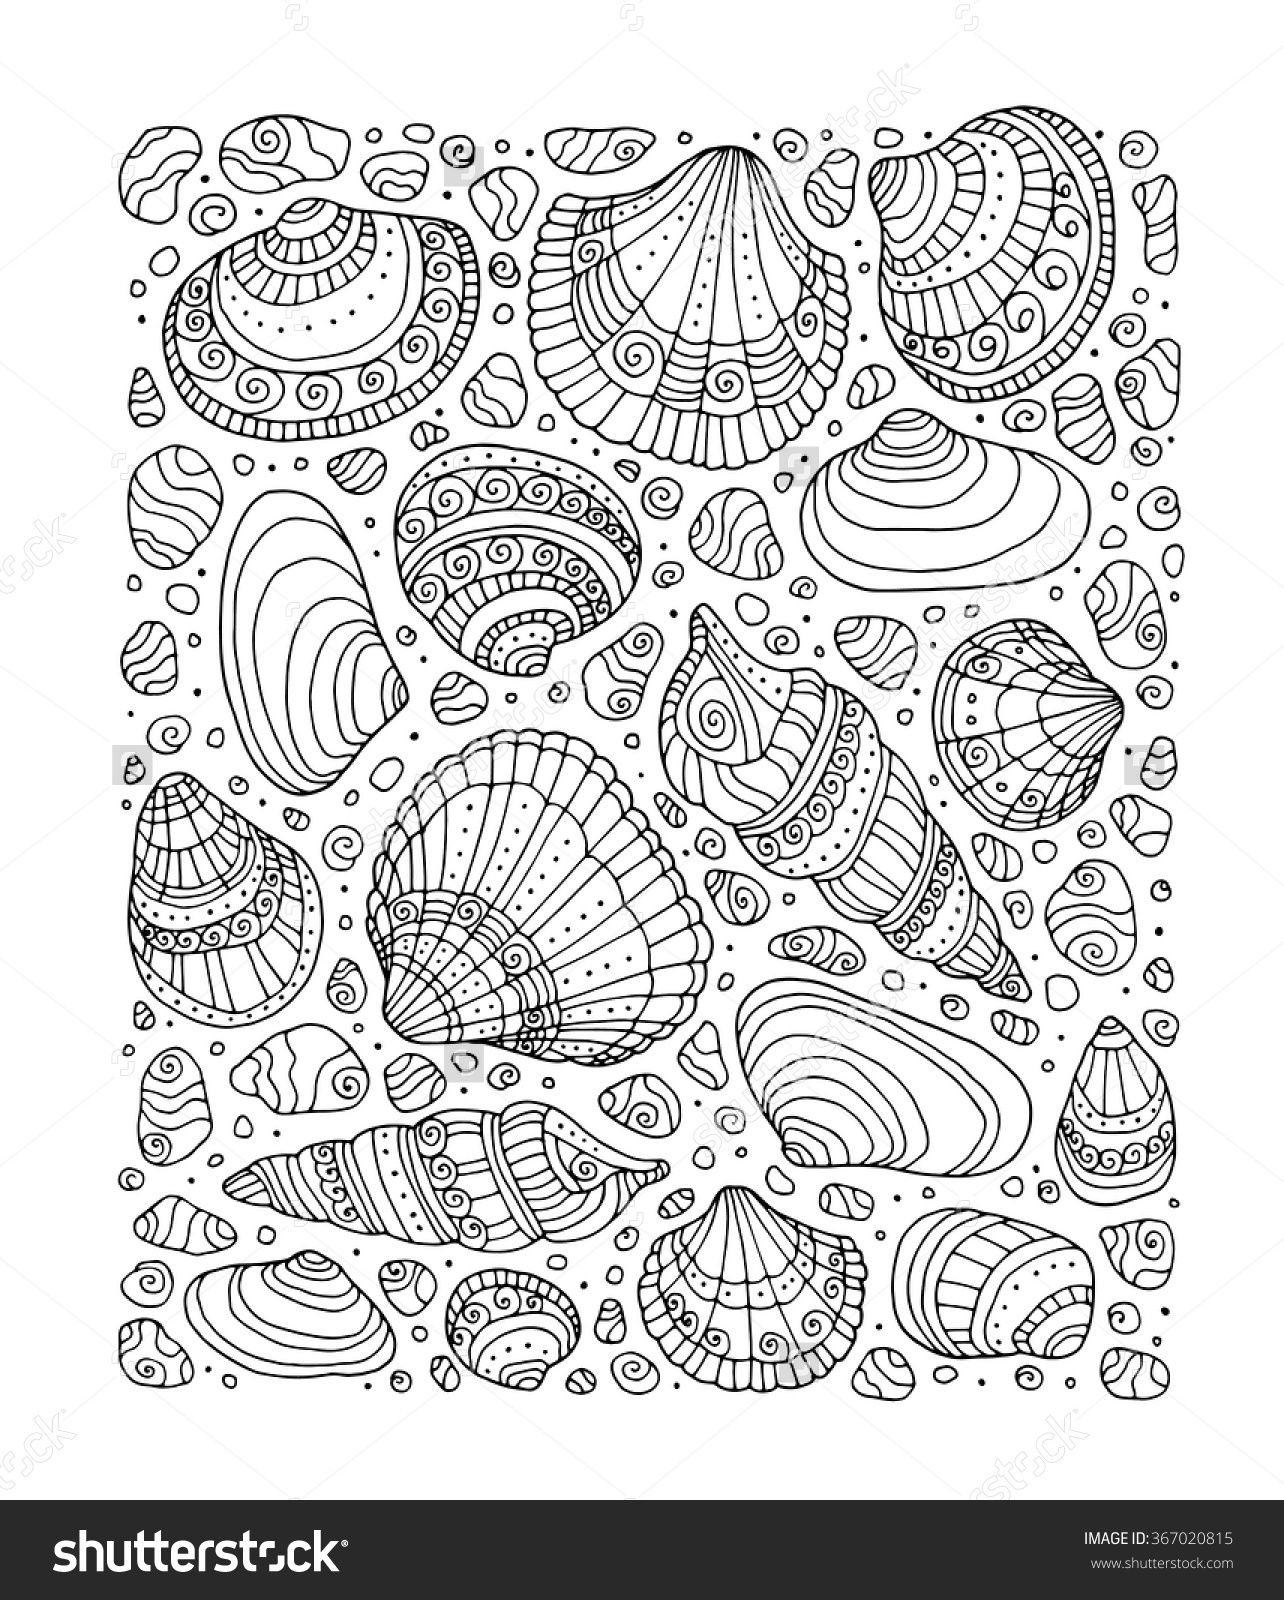 Seashell Pattern Art Background Vector Illustration Zentangle Coloring Book Page For Adult Hand Drawn Artwork Beach Concept Restaurant Menu Card